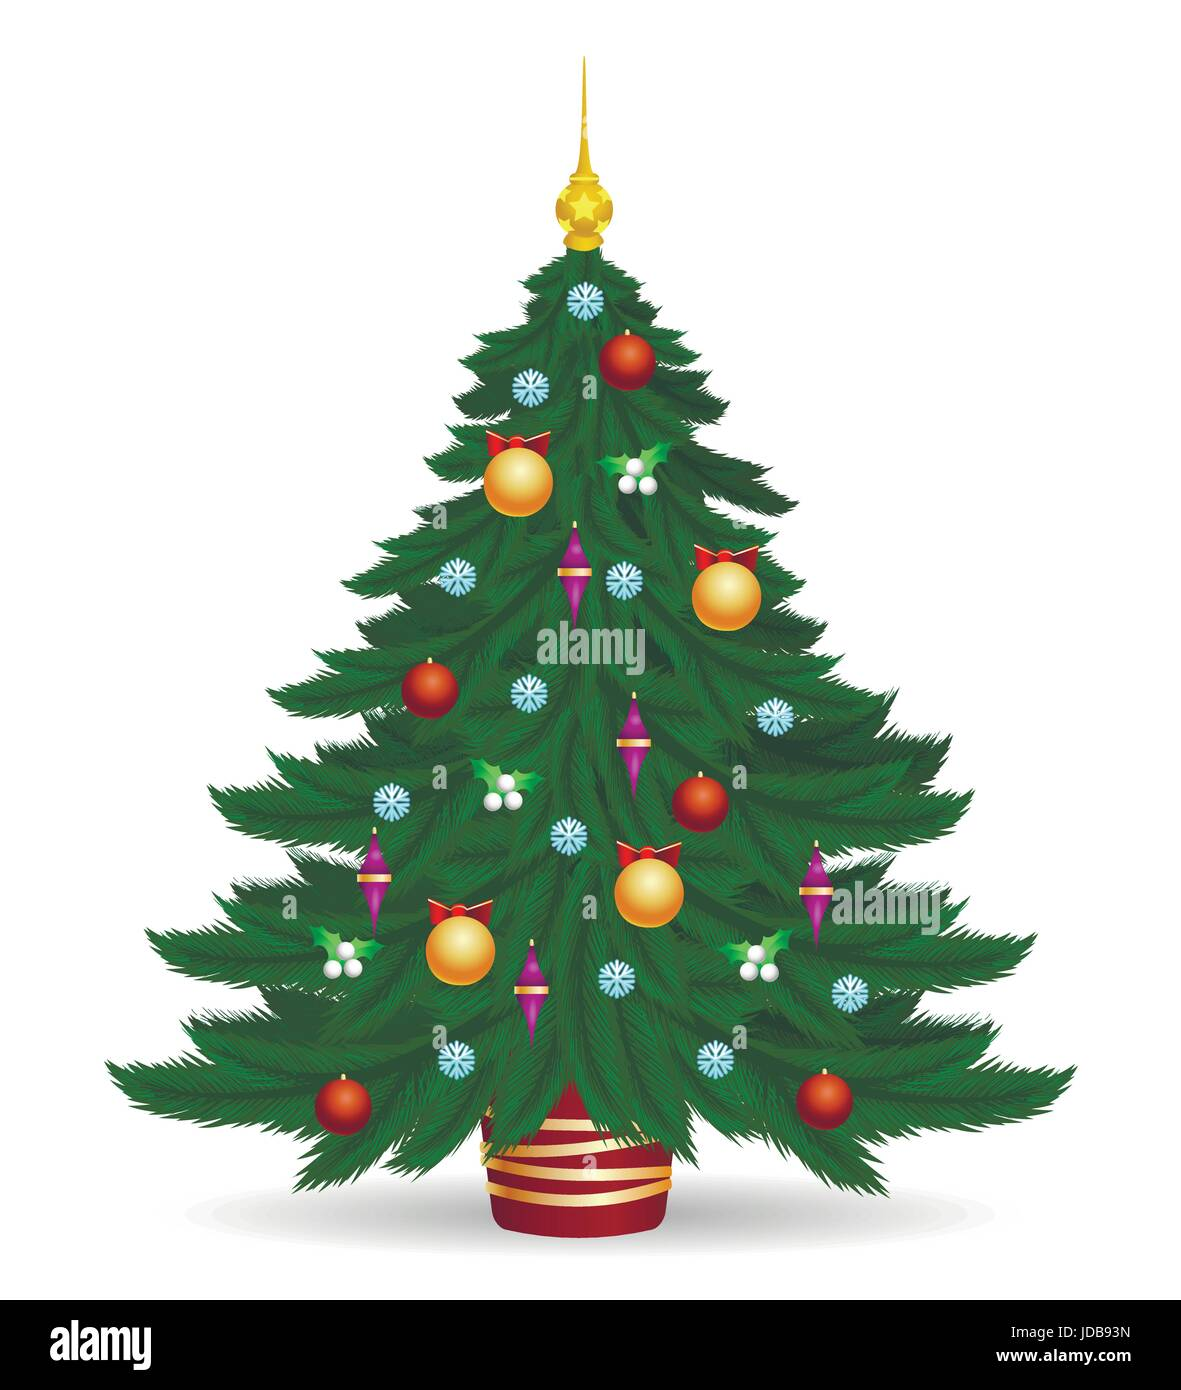 Christmas Tree Vector Illustration Decorated Colorful Traditional